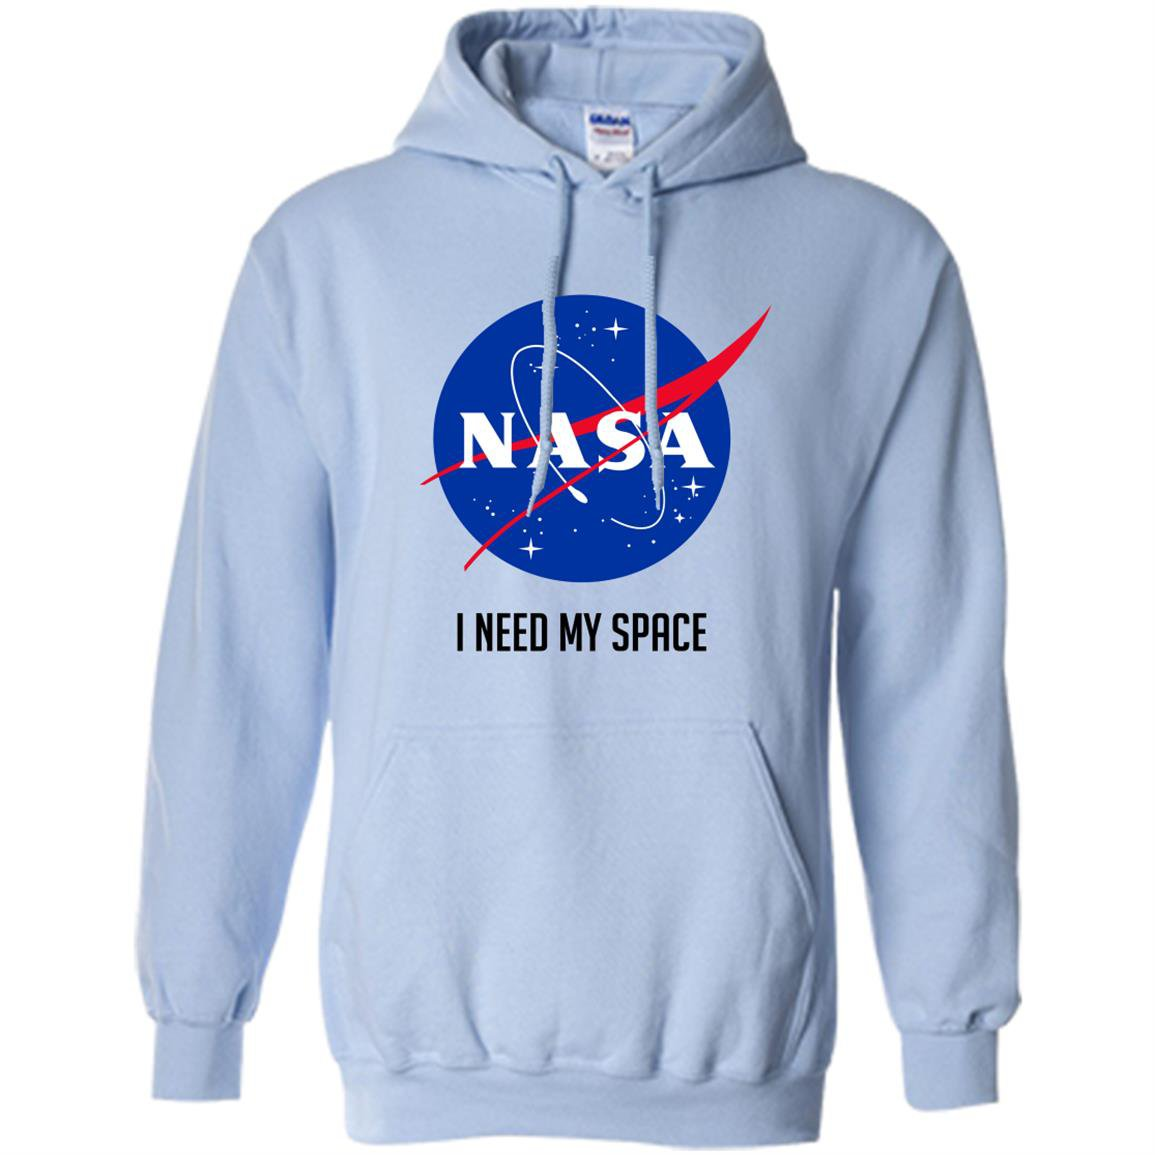 Nasa meatball logo i need my space text Hoodie